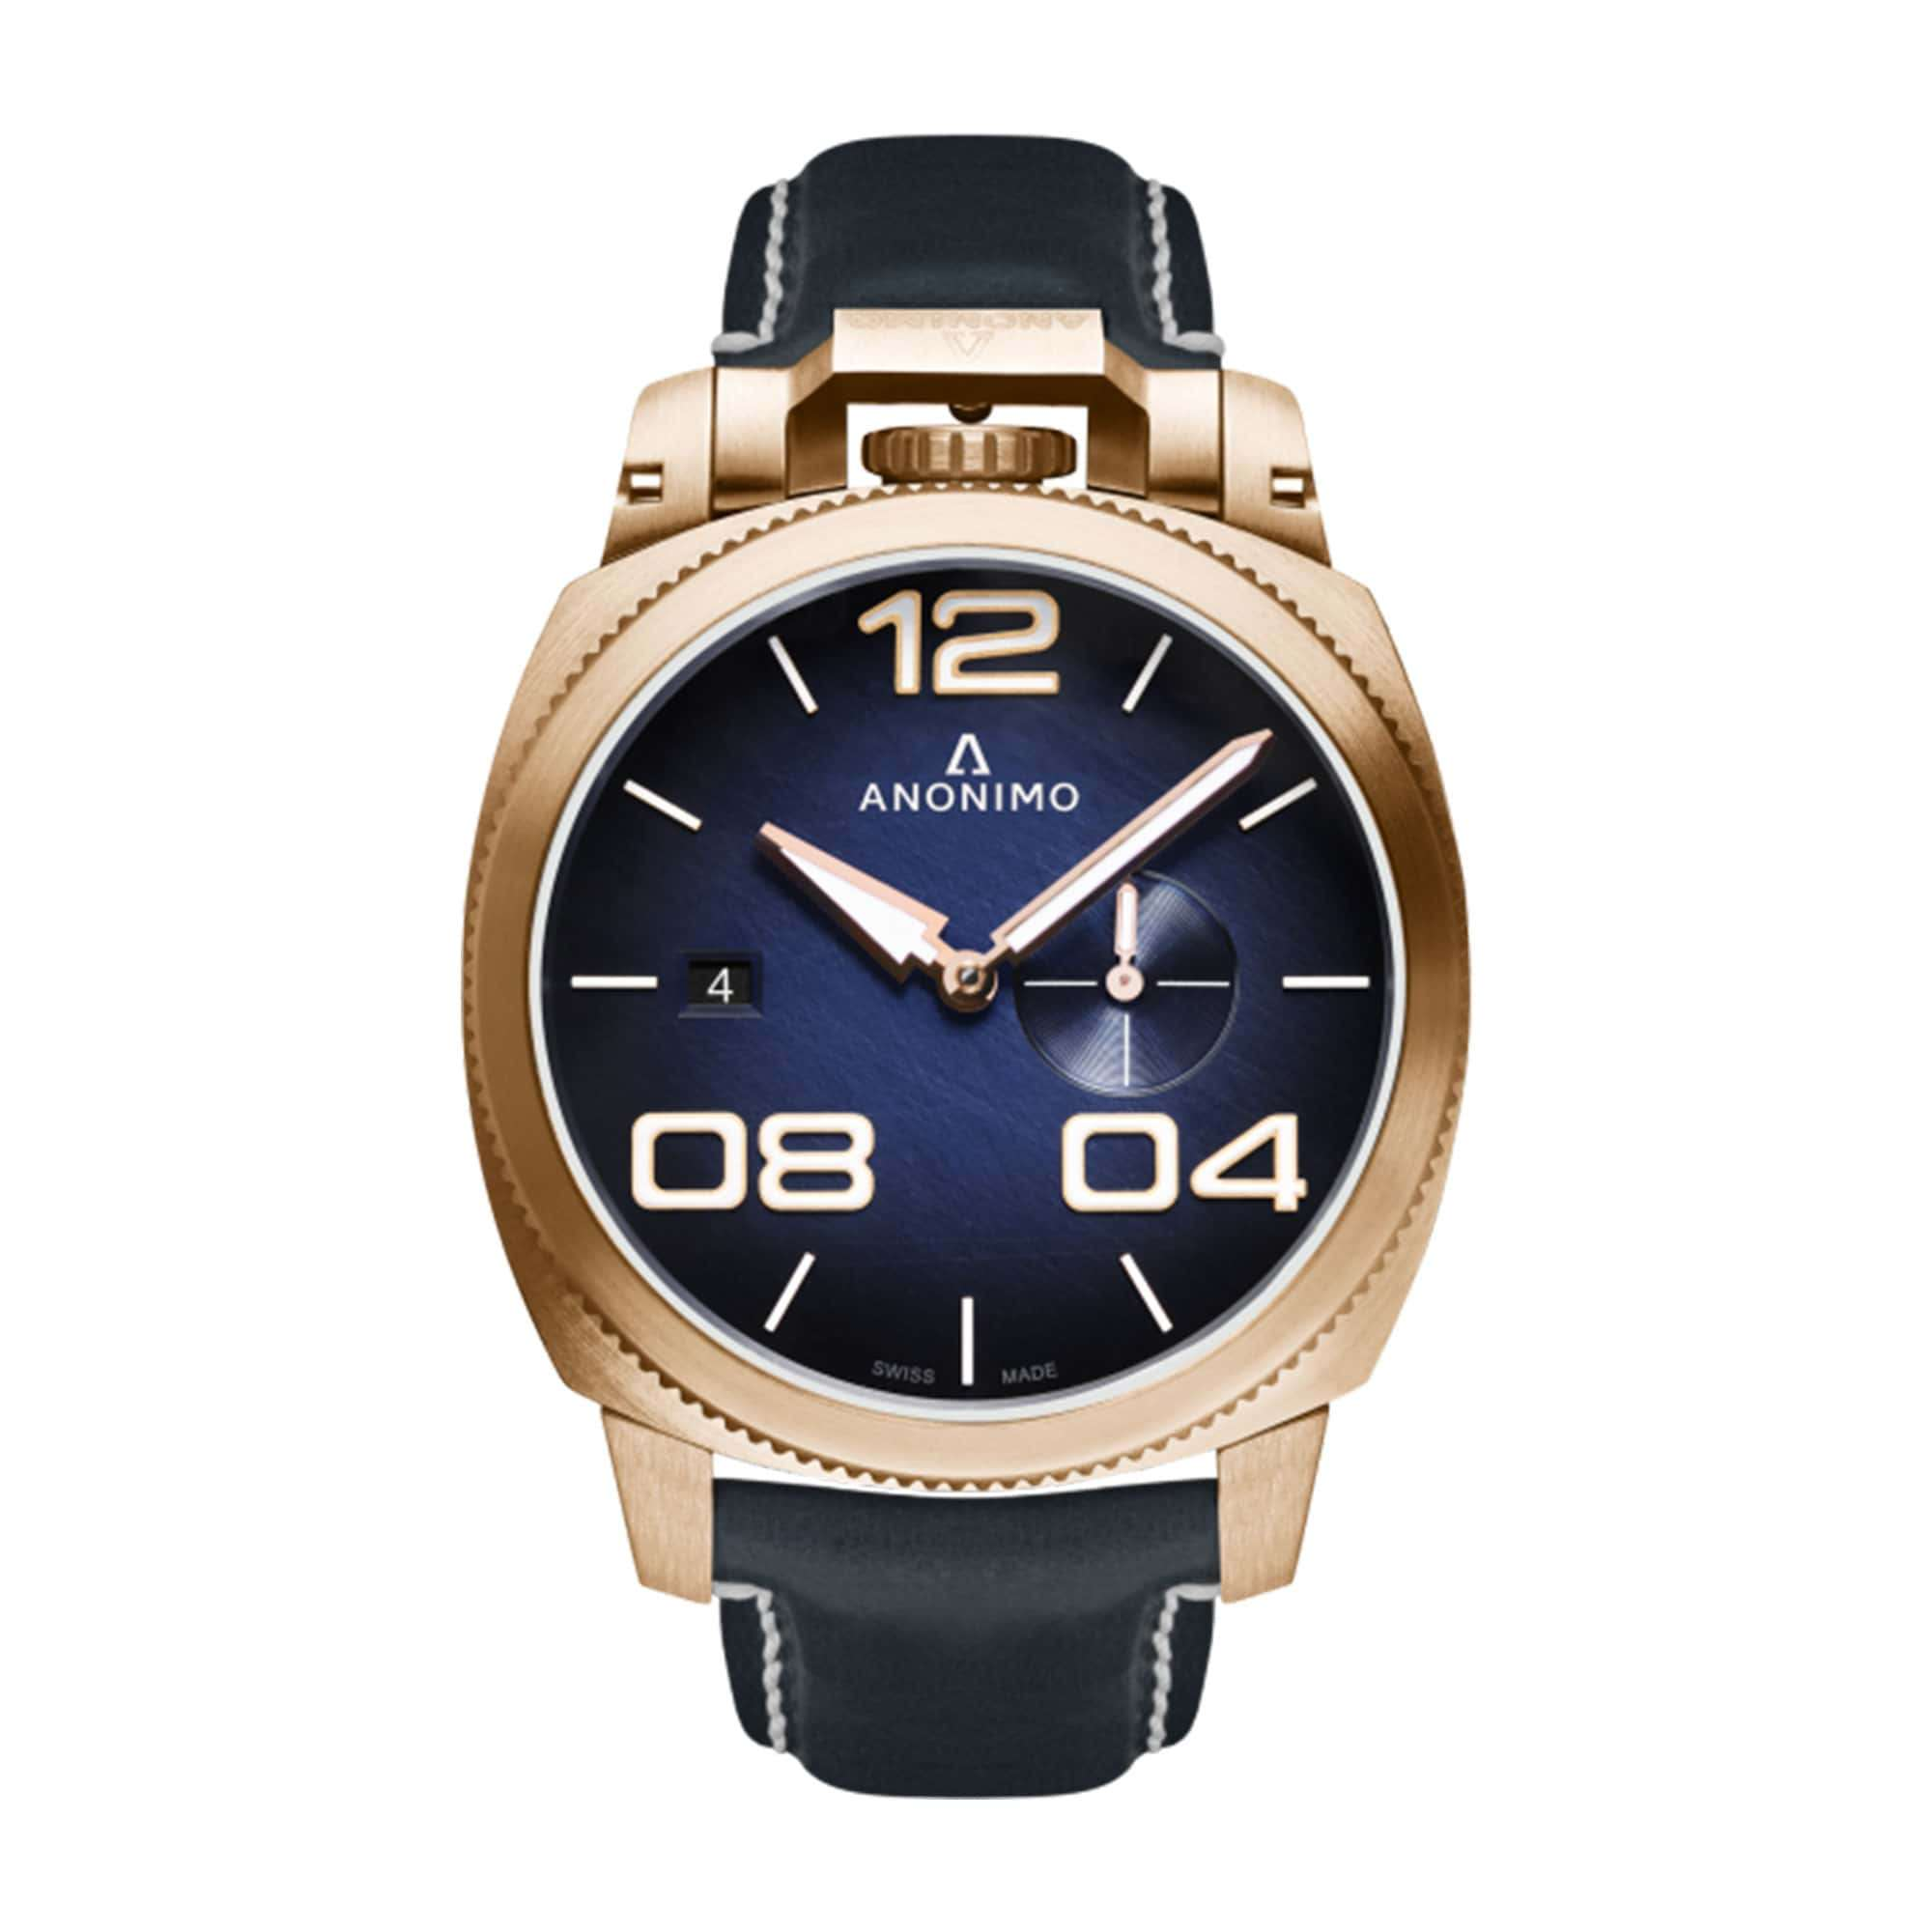 Anonimo Militare Automatic Bronze AM-1020.04.003.A03 – Swiss Time